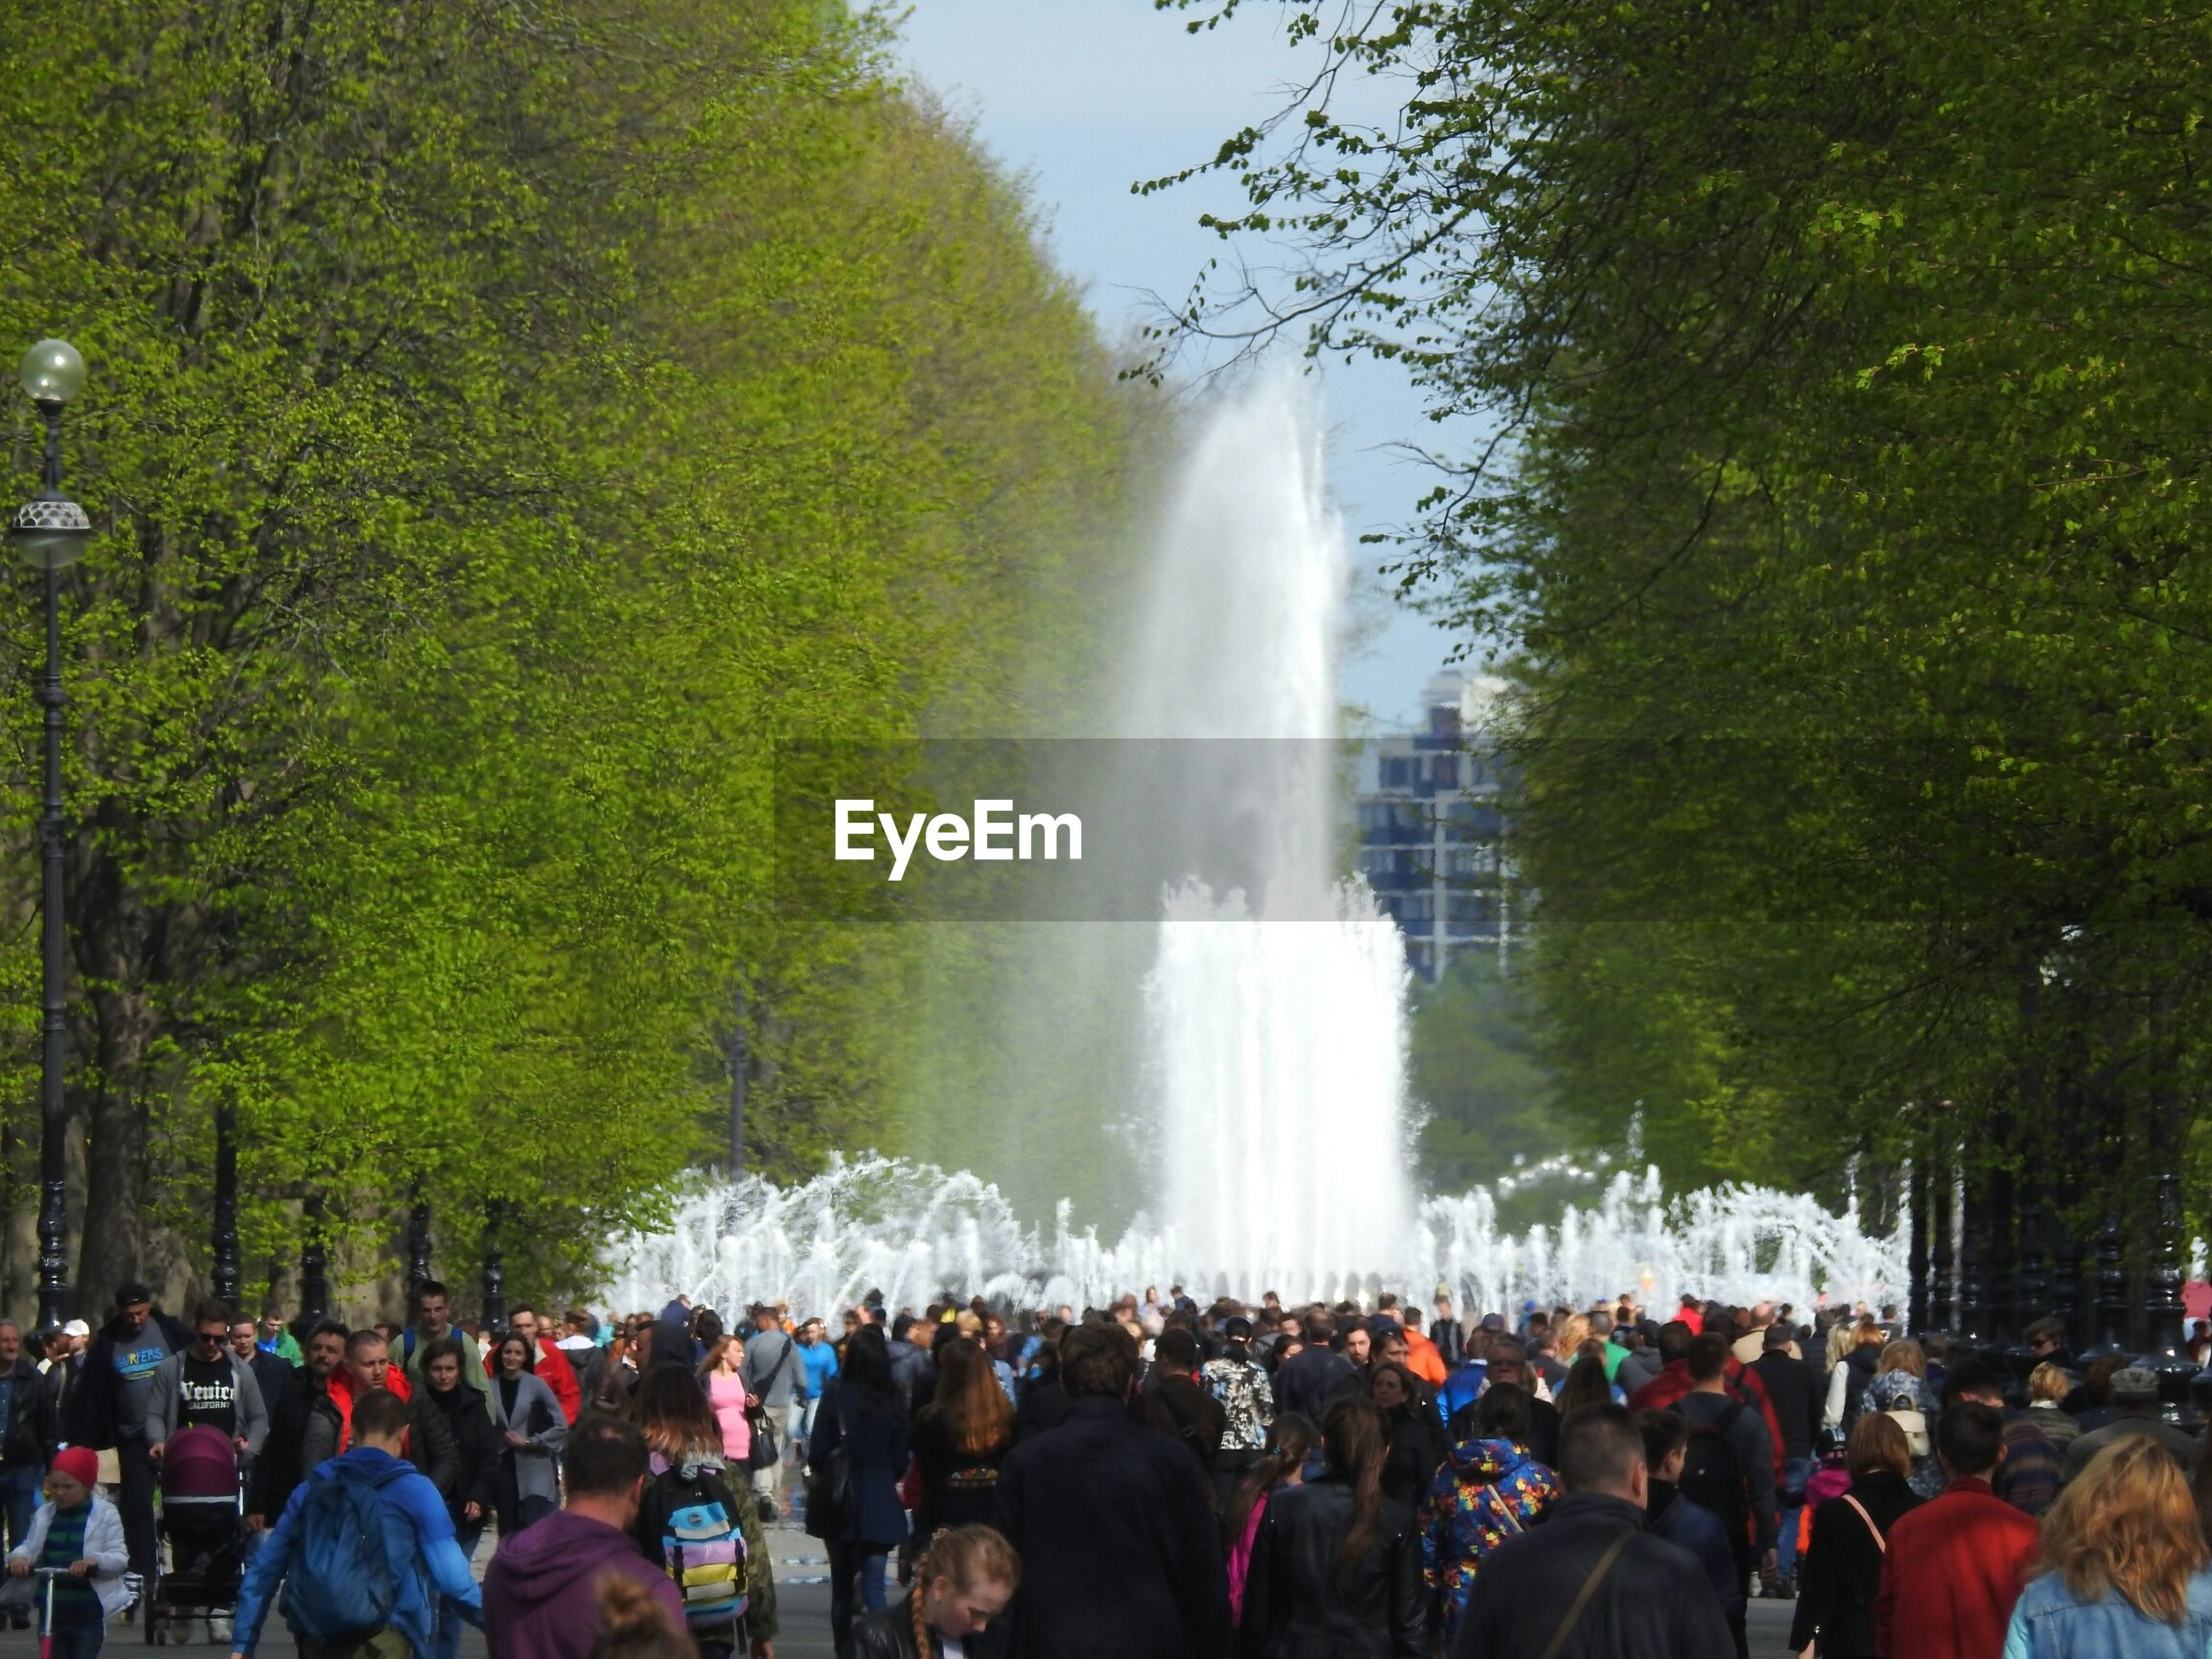 People against fountains amidst trees at park